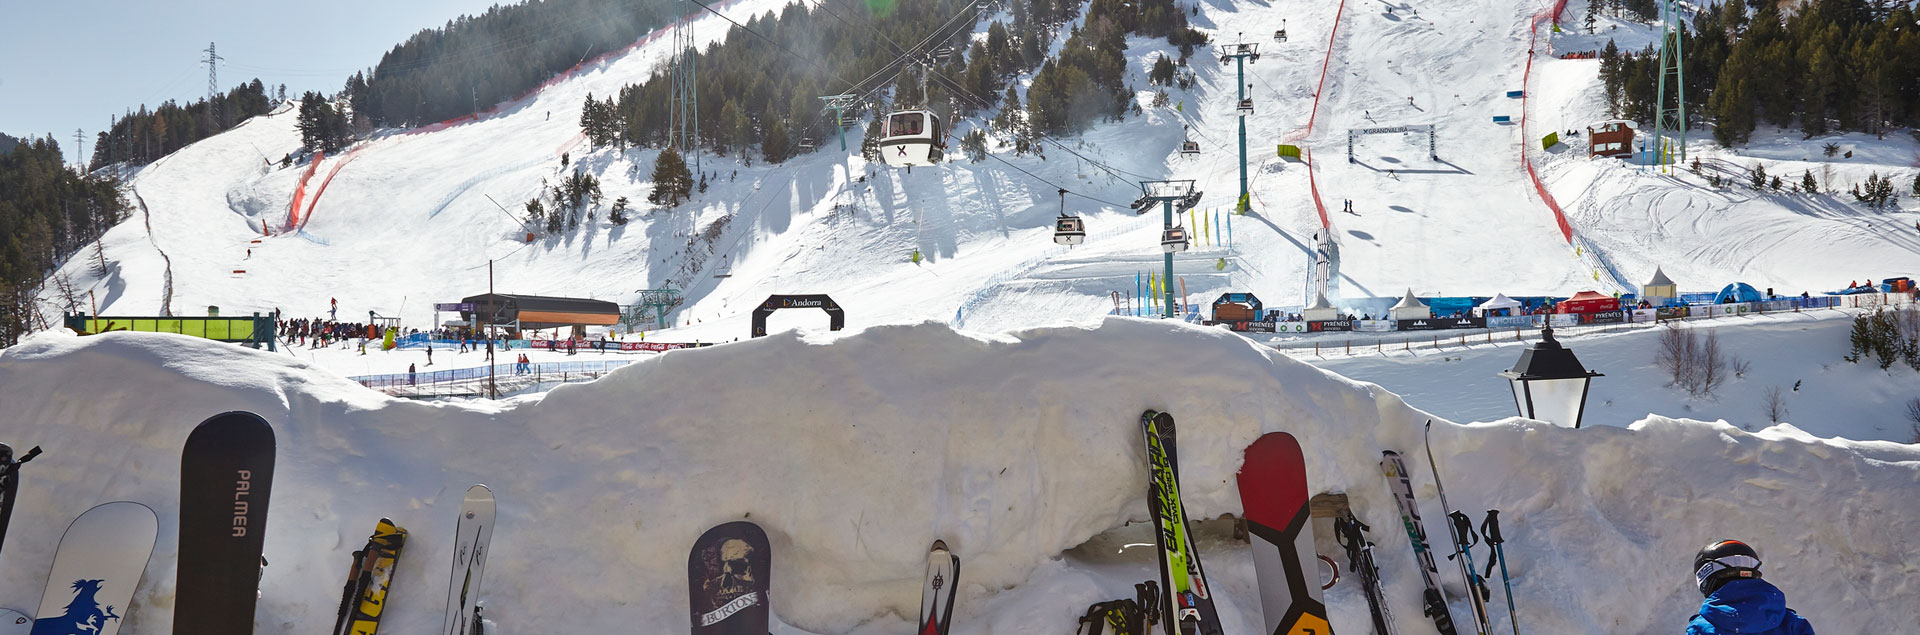 World Cup Grandvalira in Soldeu Avet slope